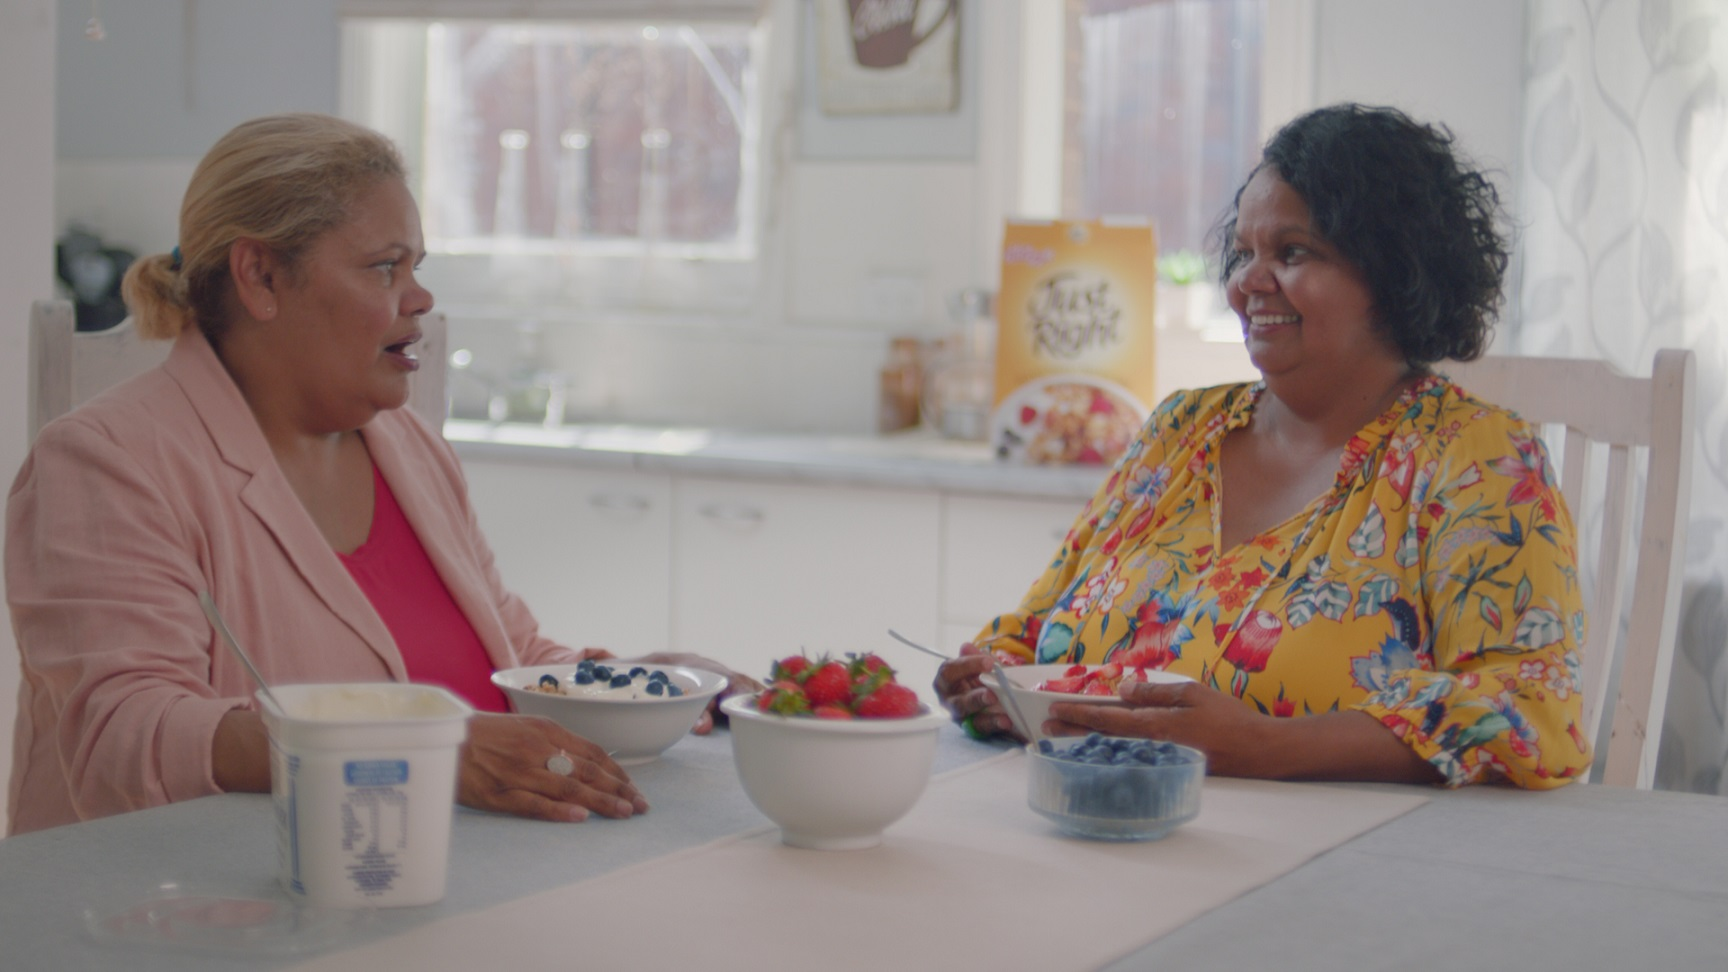 Kellogg's My Perfect Bowl via Wunderman Thompson and Lucky Price takes home gold at the Casting Guild of Australia Awards